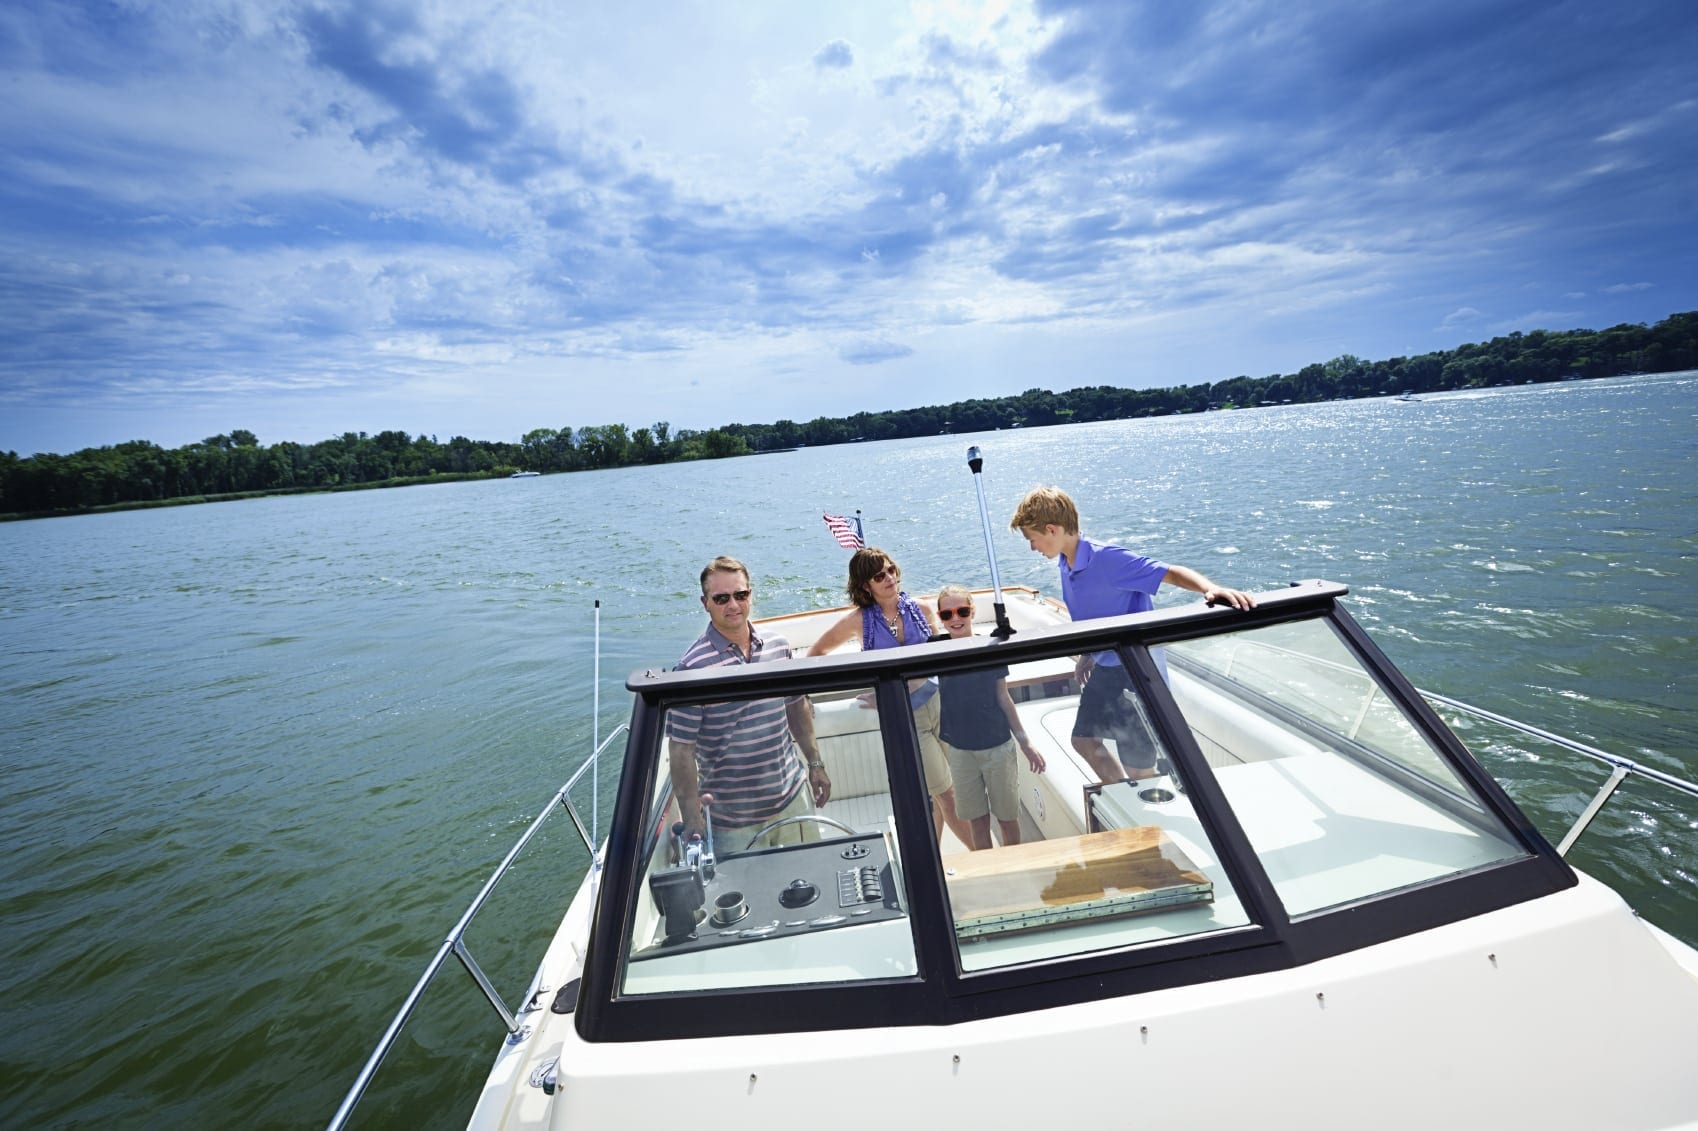 Family Riding A Boat On A Lake Stock Photo